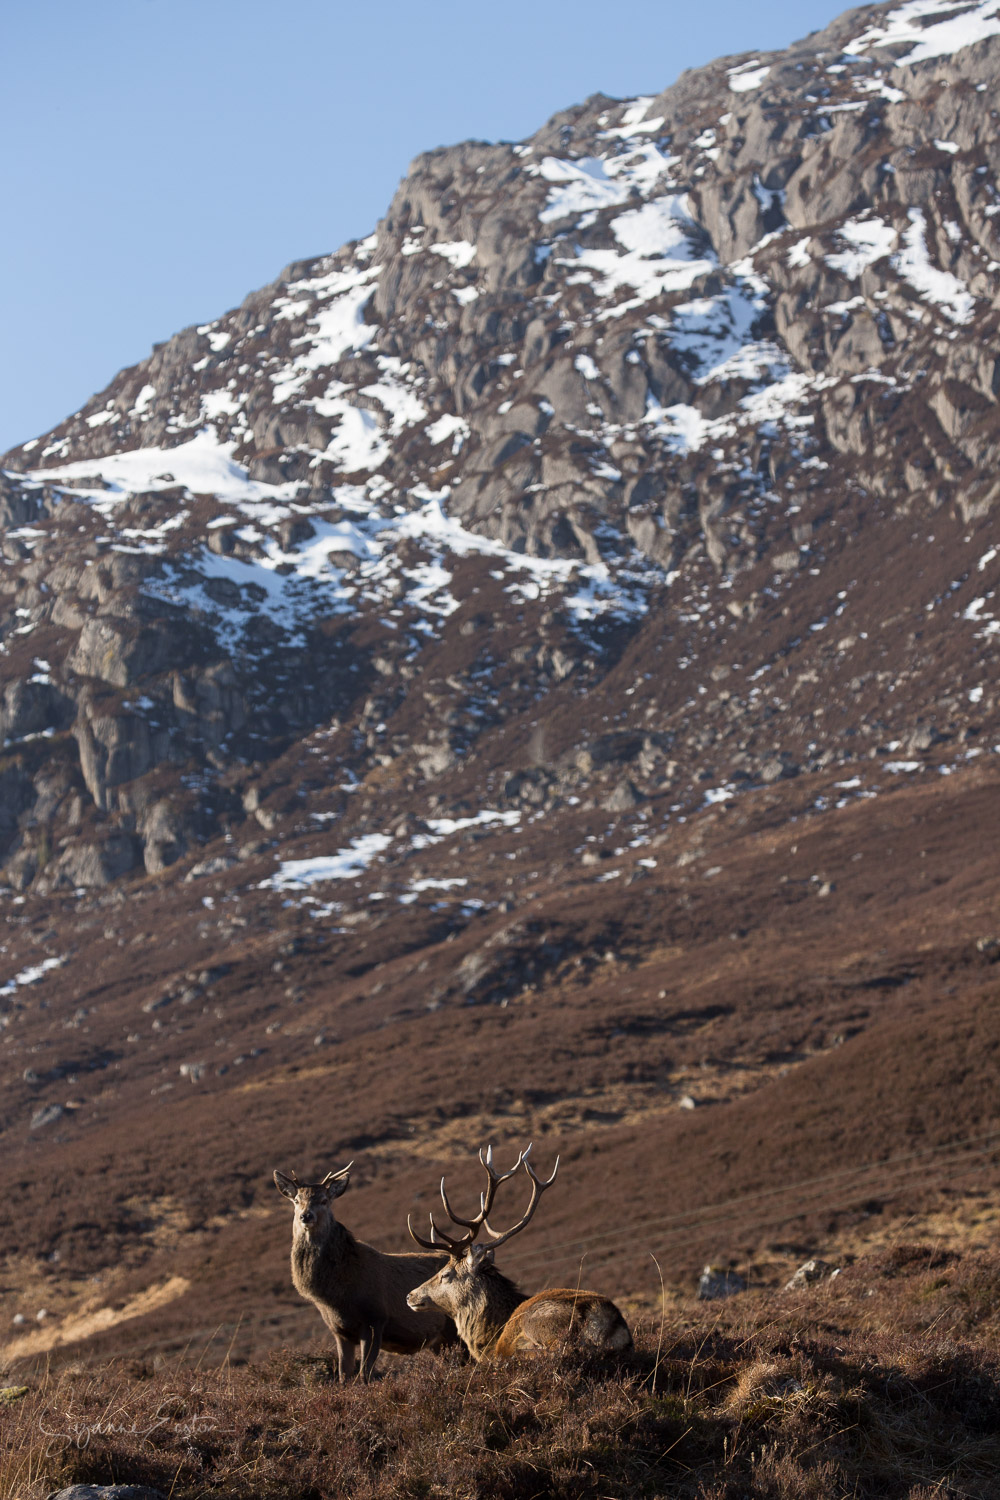 Red deer hind and stag in the Scottish Highlands